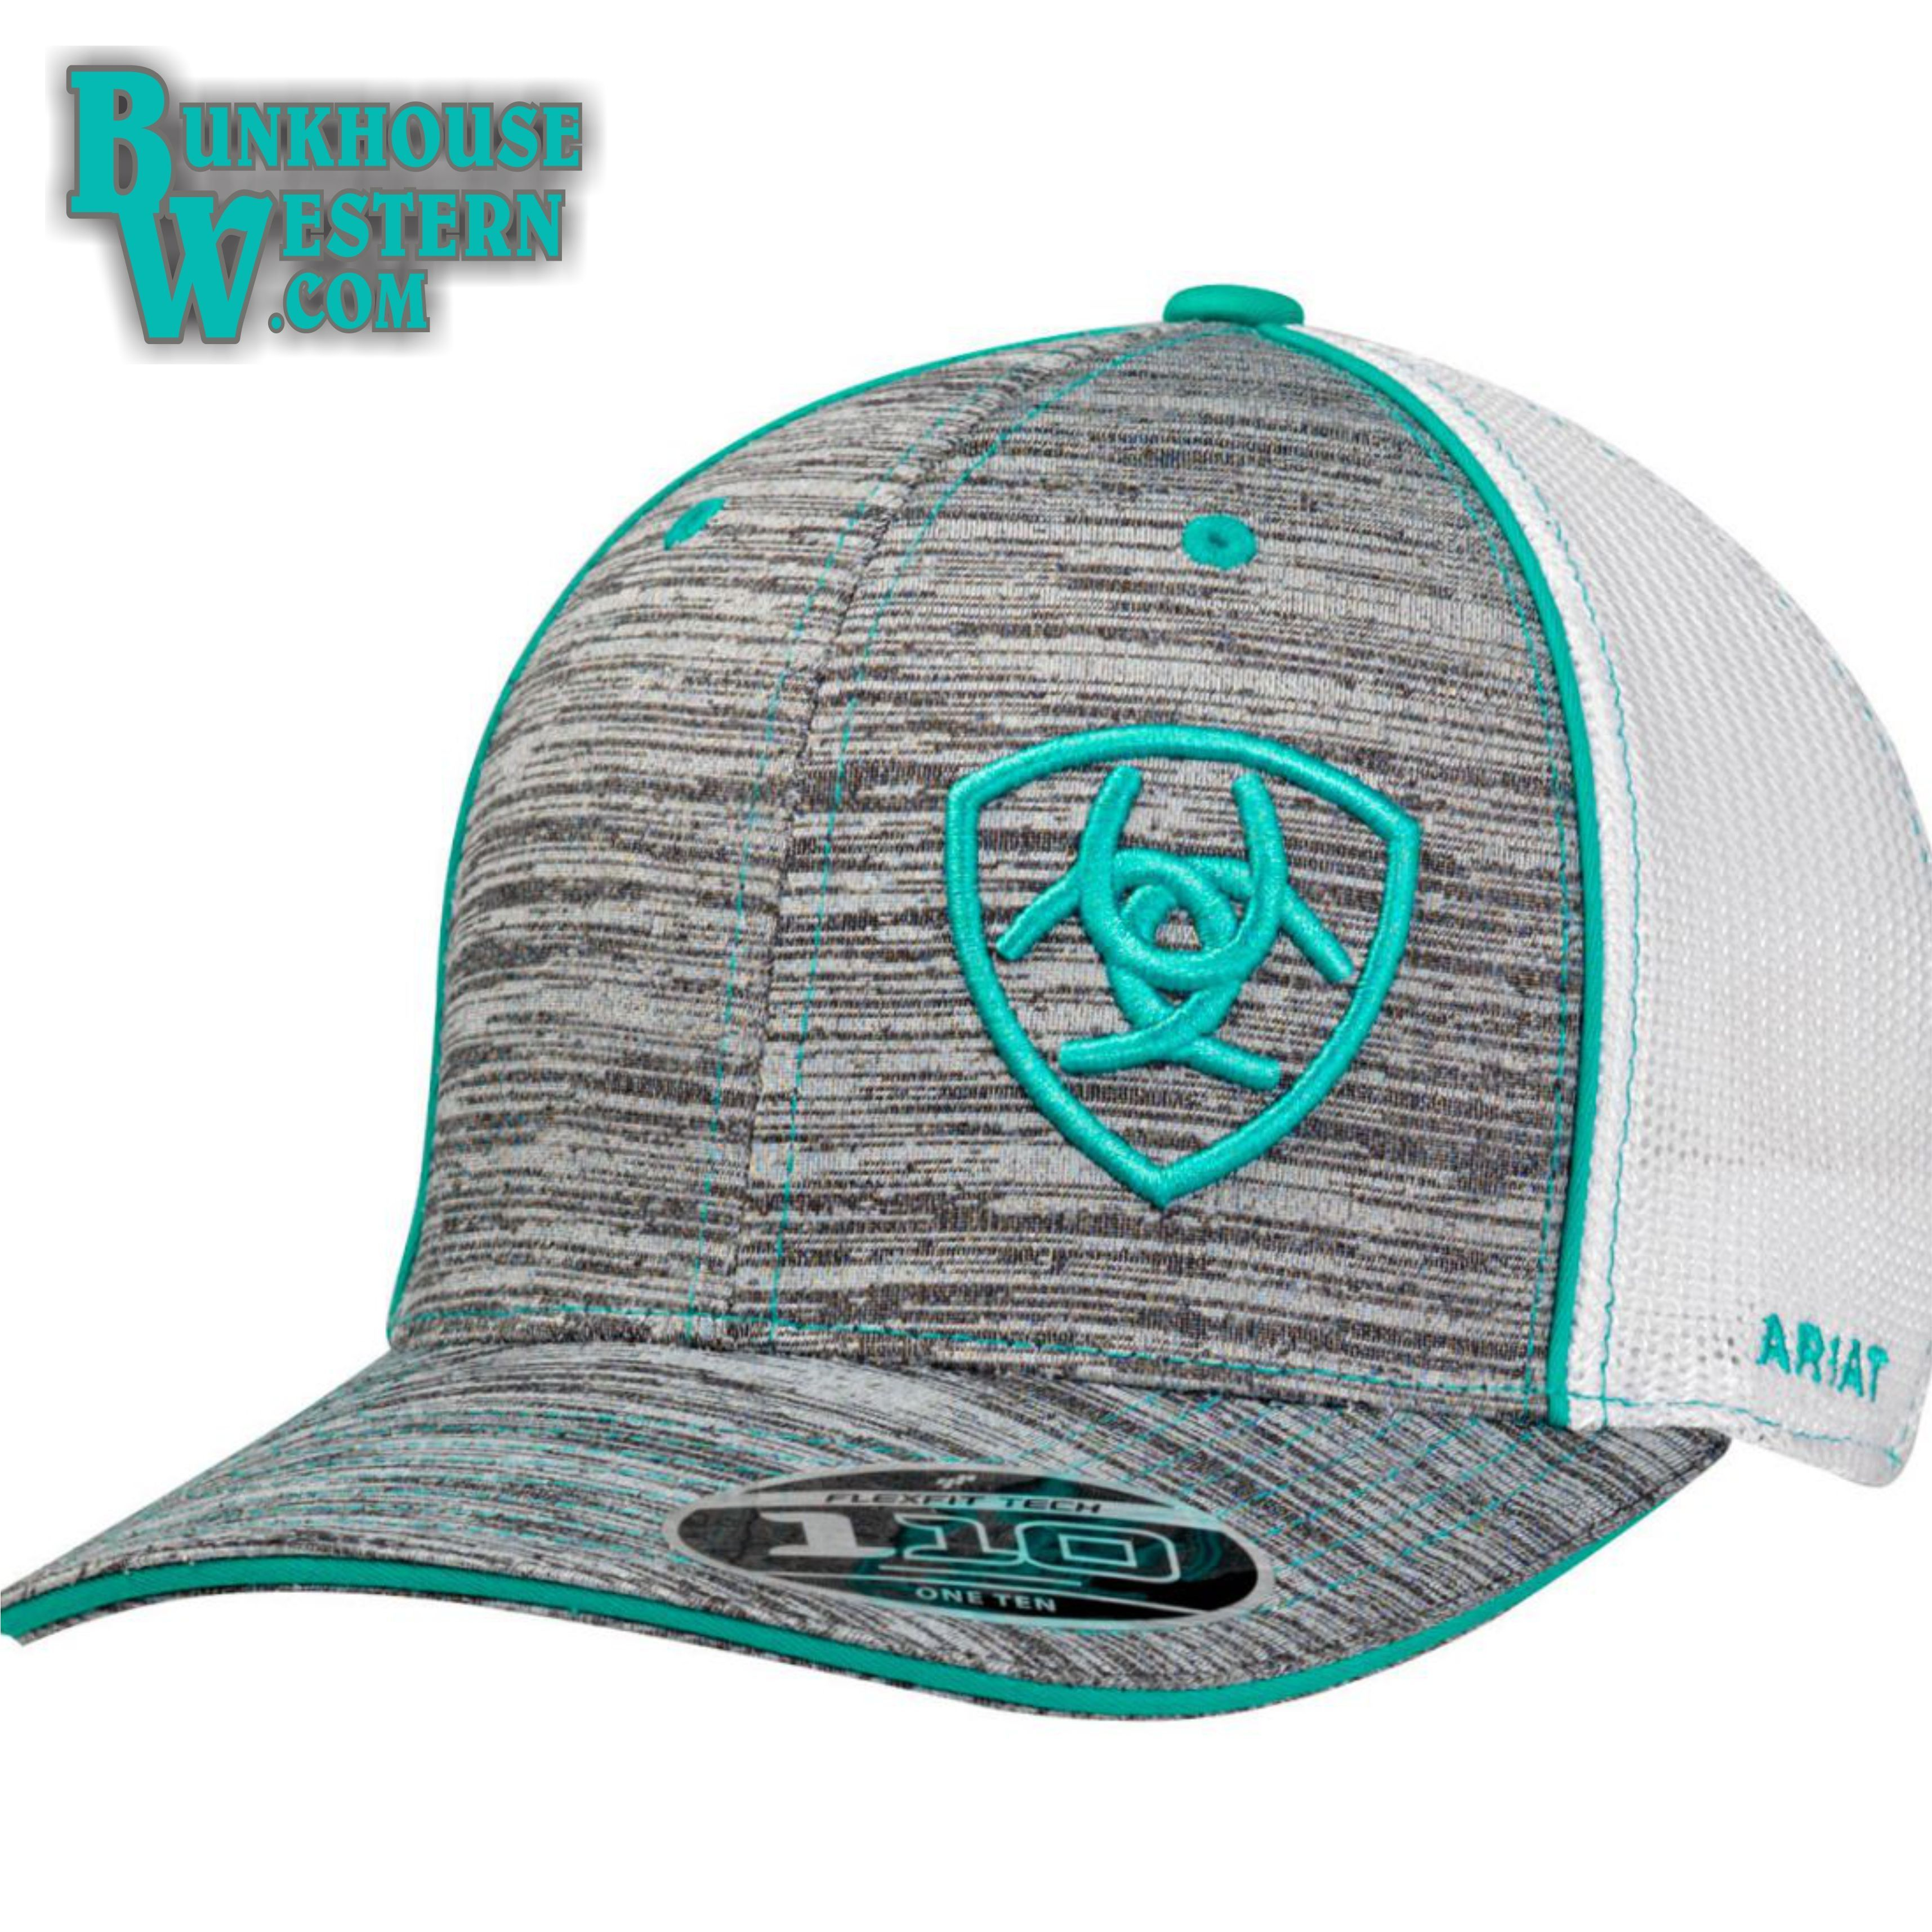 a51a0661e Hats for Women: Ariat, Heathered Gray, Cap with Turquoise Stitchin ...